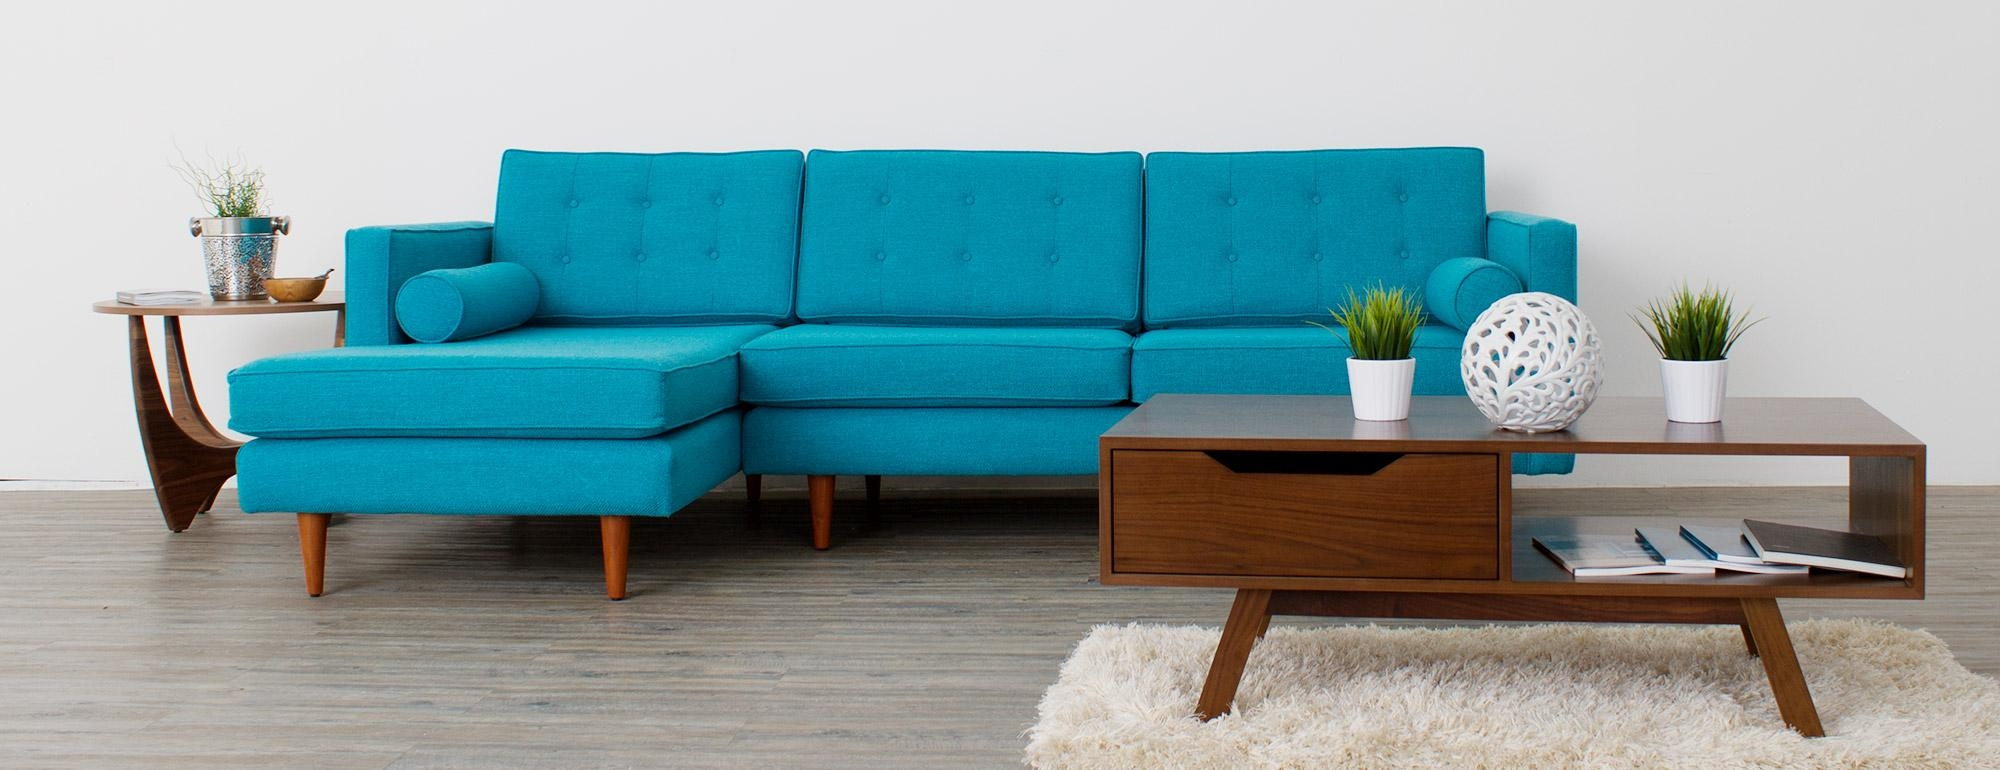 Braxton Sectional | Joybird Within Braxton Sofa (Image 8 of 20)